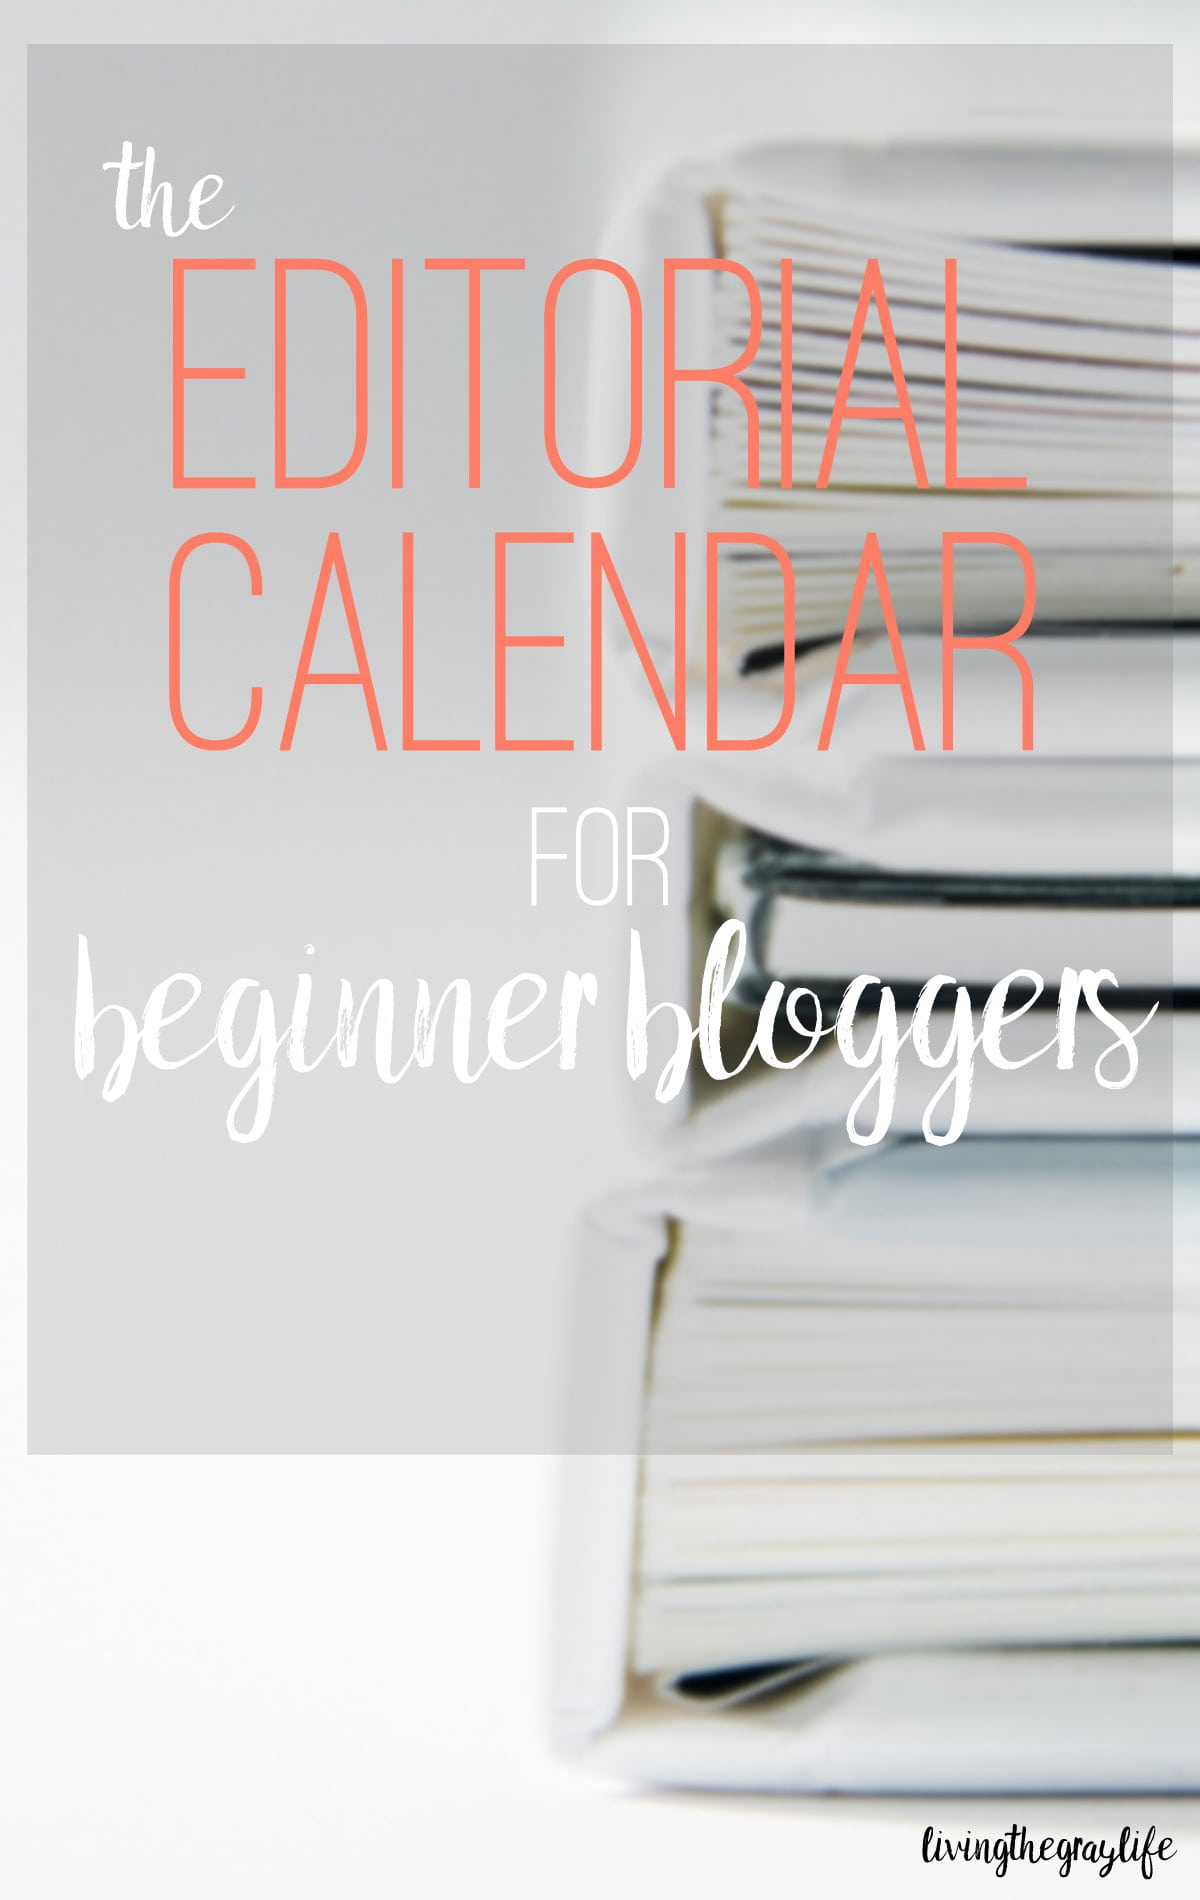 Master the editorial calendar with this post!